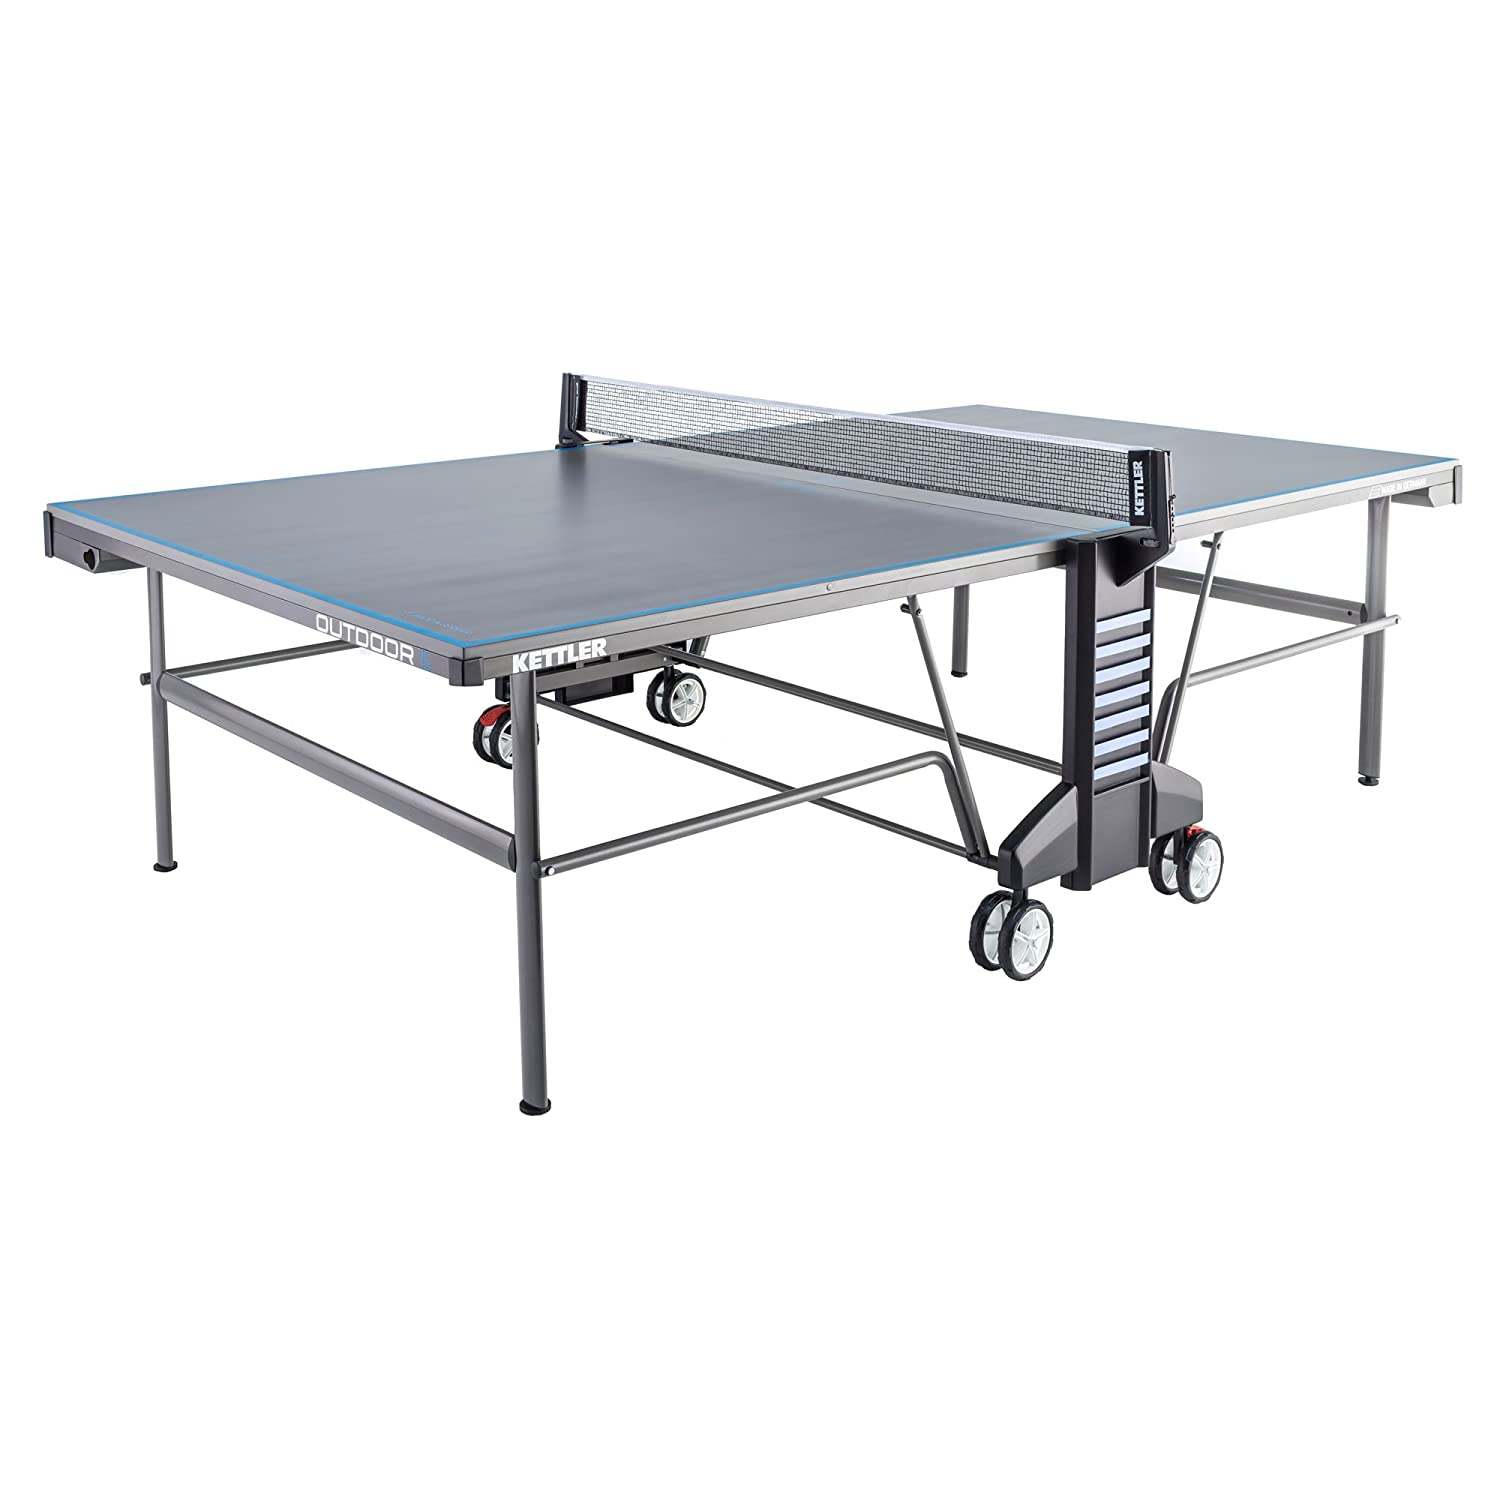 KETTLER Outdoor 6 Table Tennis Table